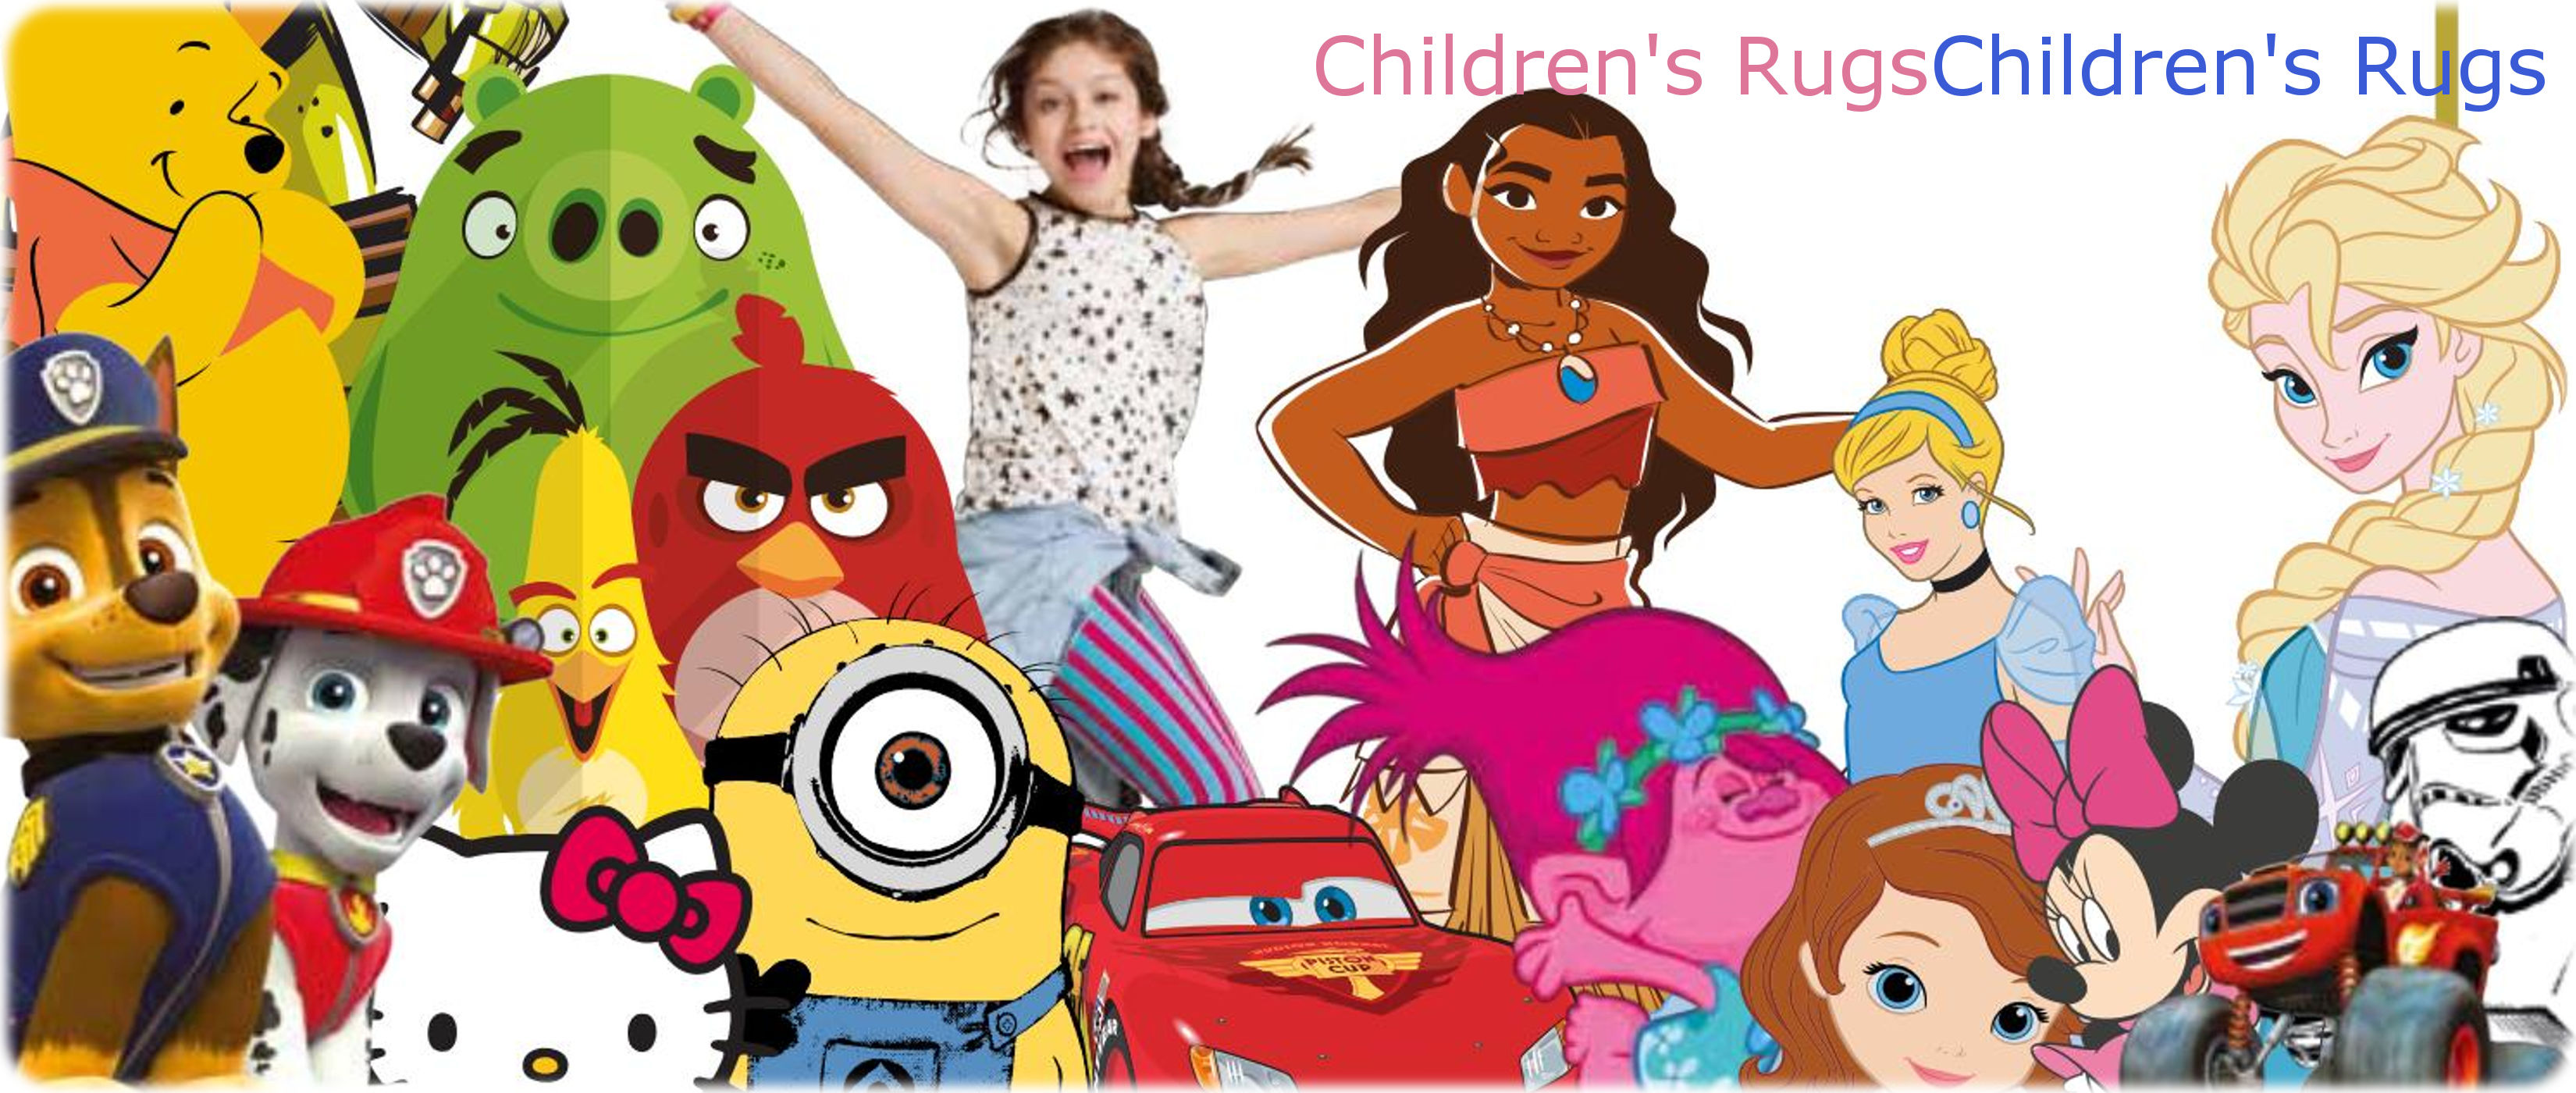 Children's rugs logo